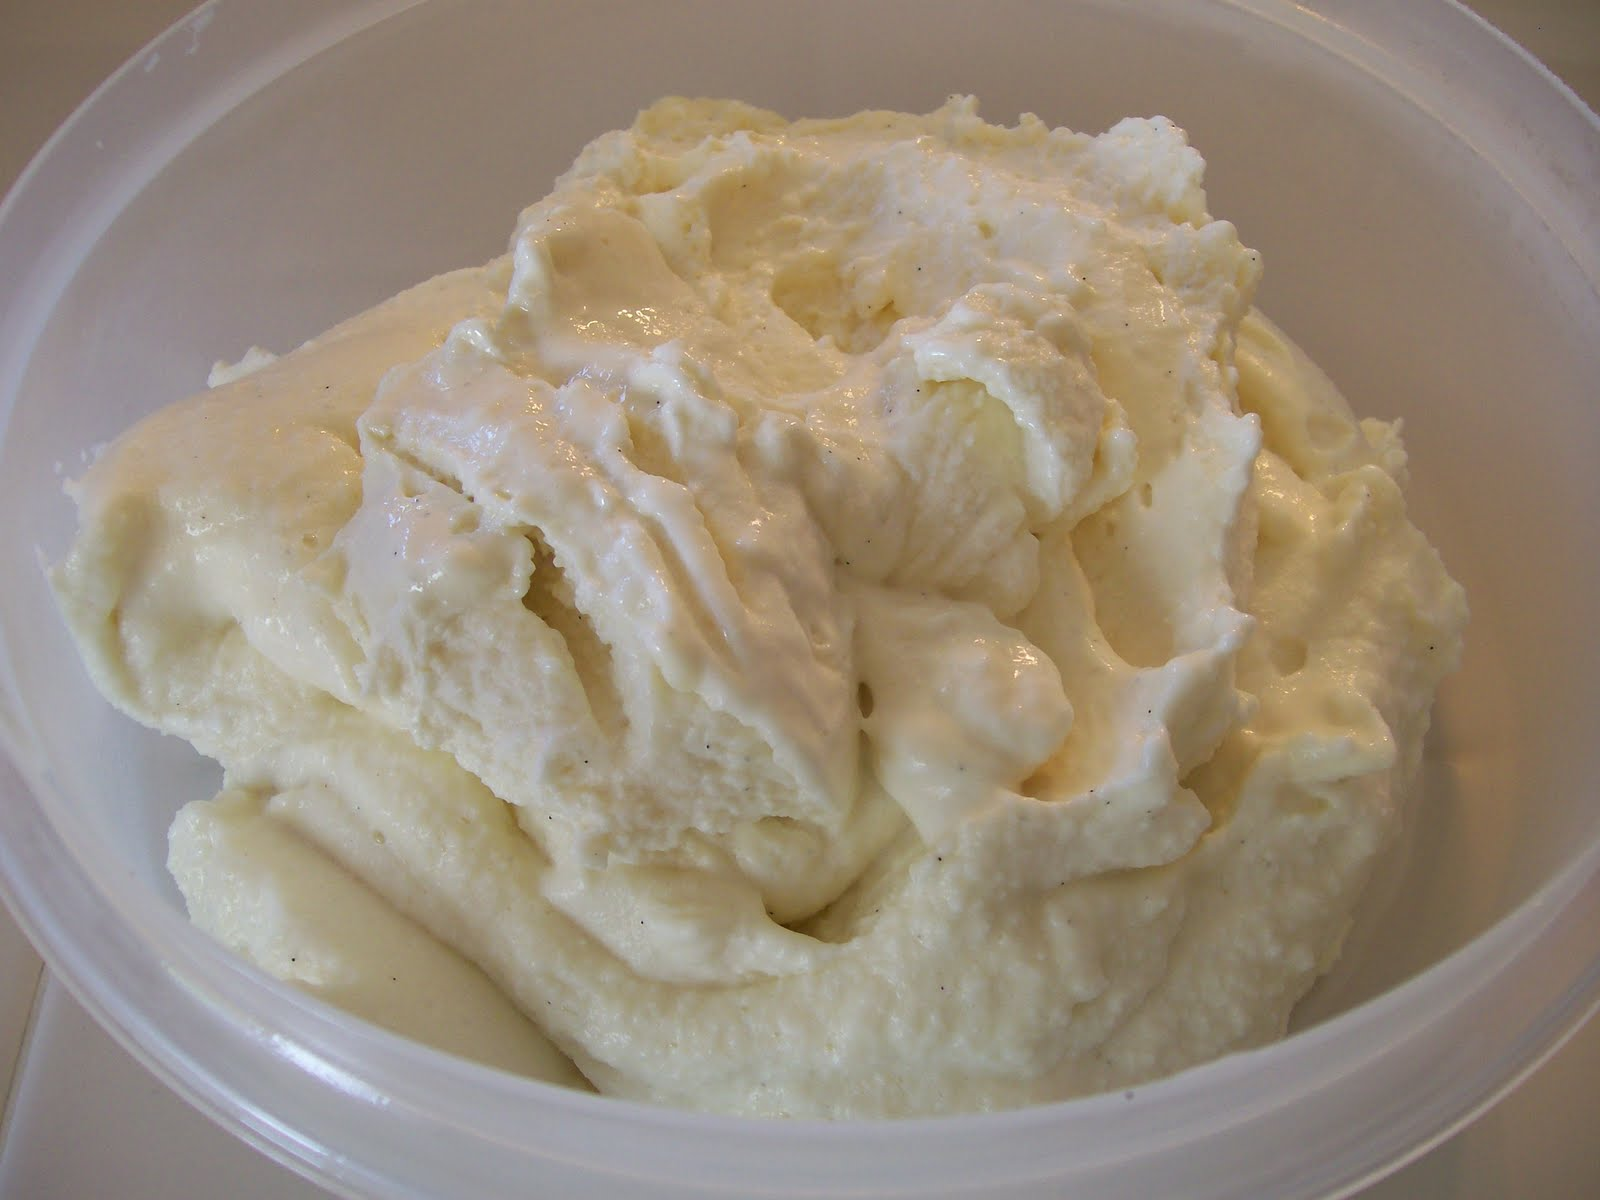 Shelly's Very Very Vanilla Protein Ice Cream